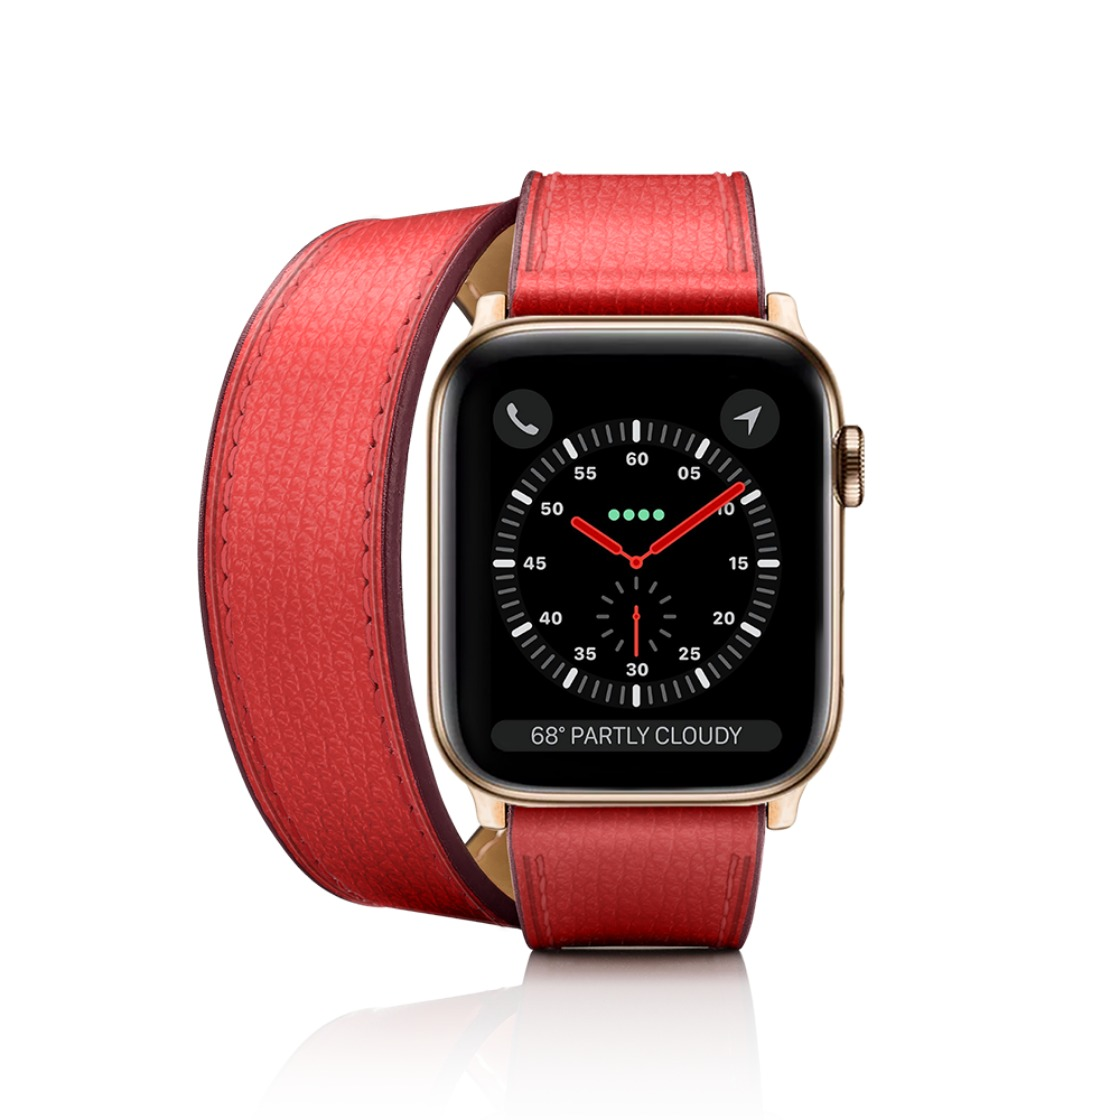 a4b6d84b4 2-in-1 Italian Leather Watch Band Kit - Red Double Tour + Single Strap